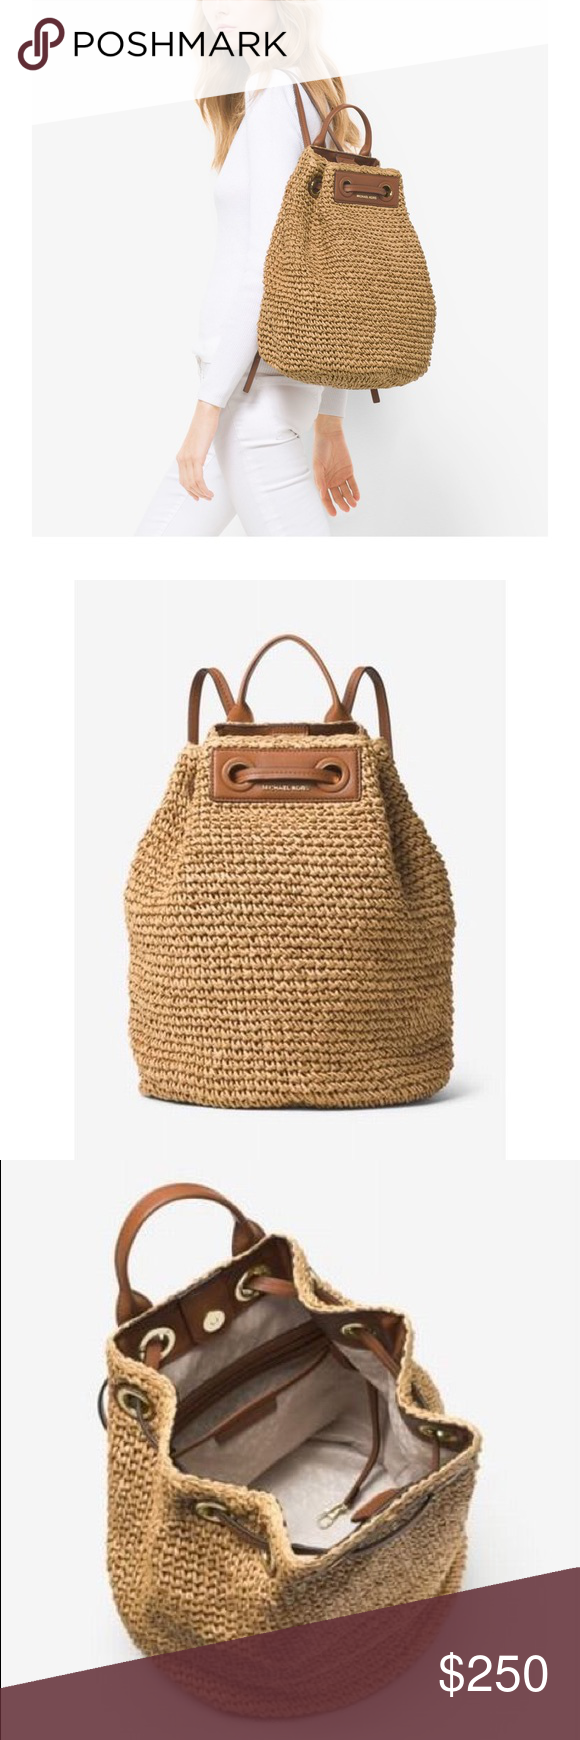 947d5d533aa61f Michael Kors Krissy Straw Natural Backpack This season, we've reimagined  the backpack in